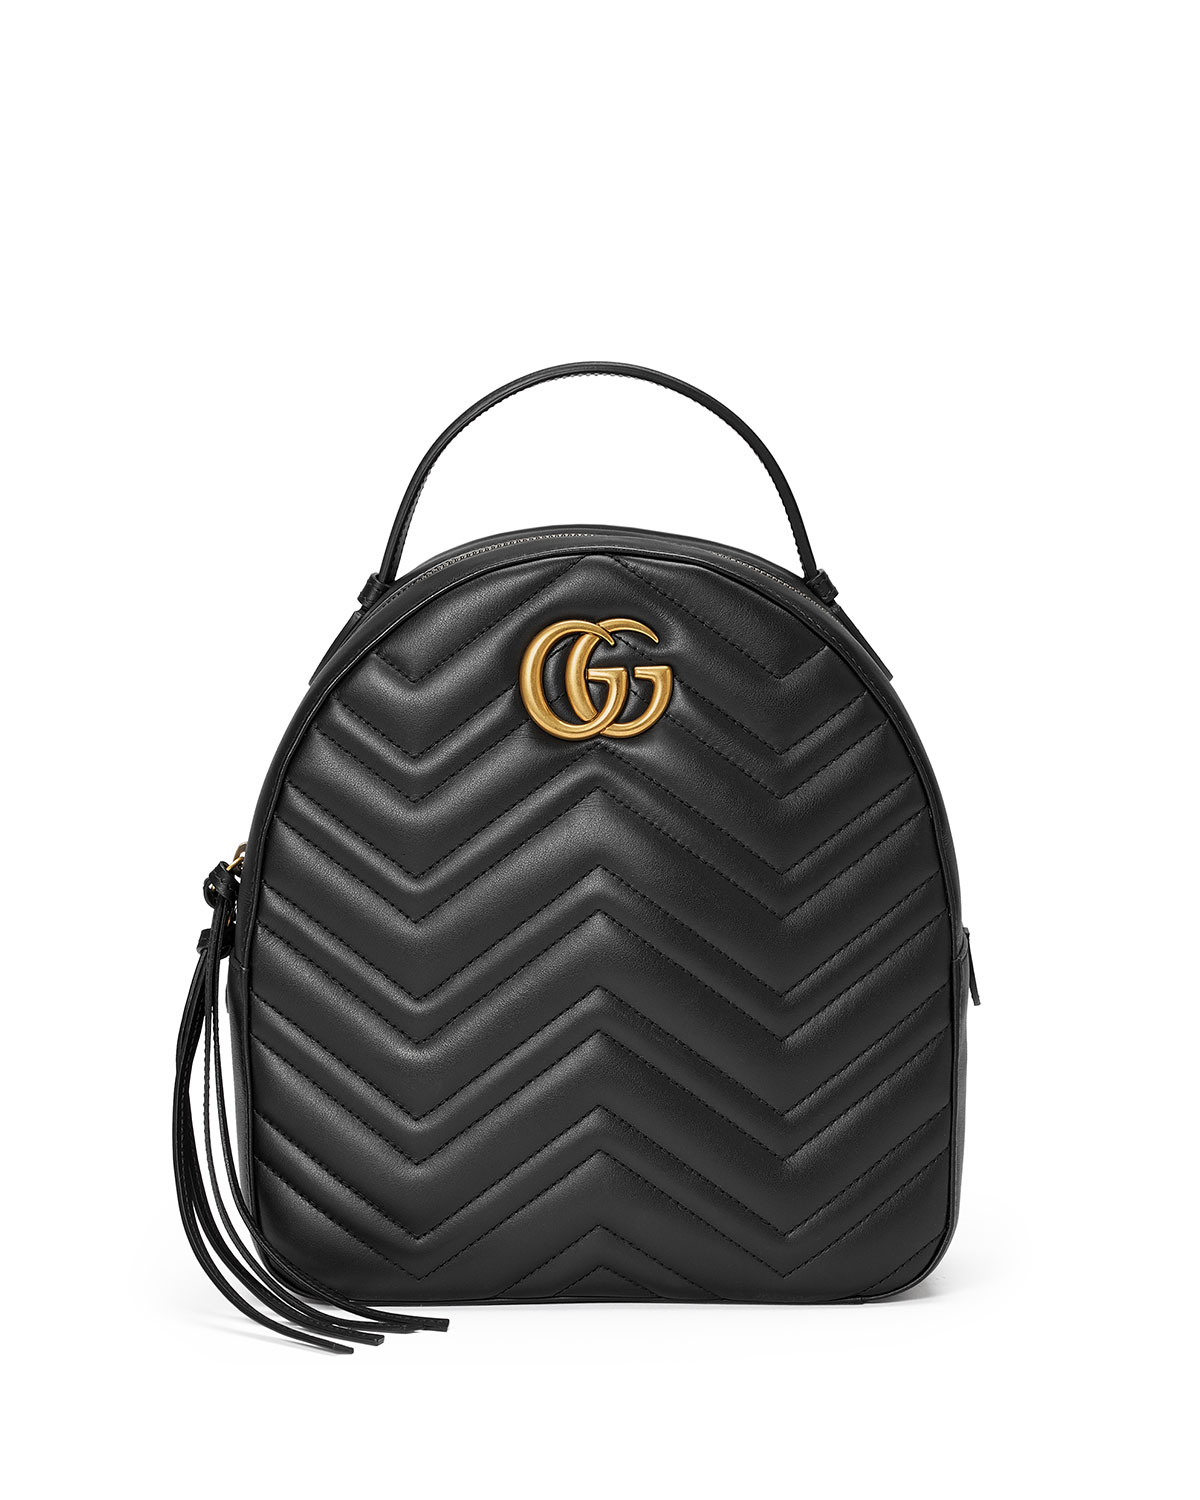 GG Marmont Quilted Leather Backpack, Black